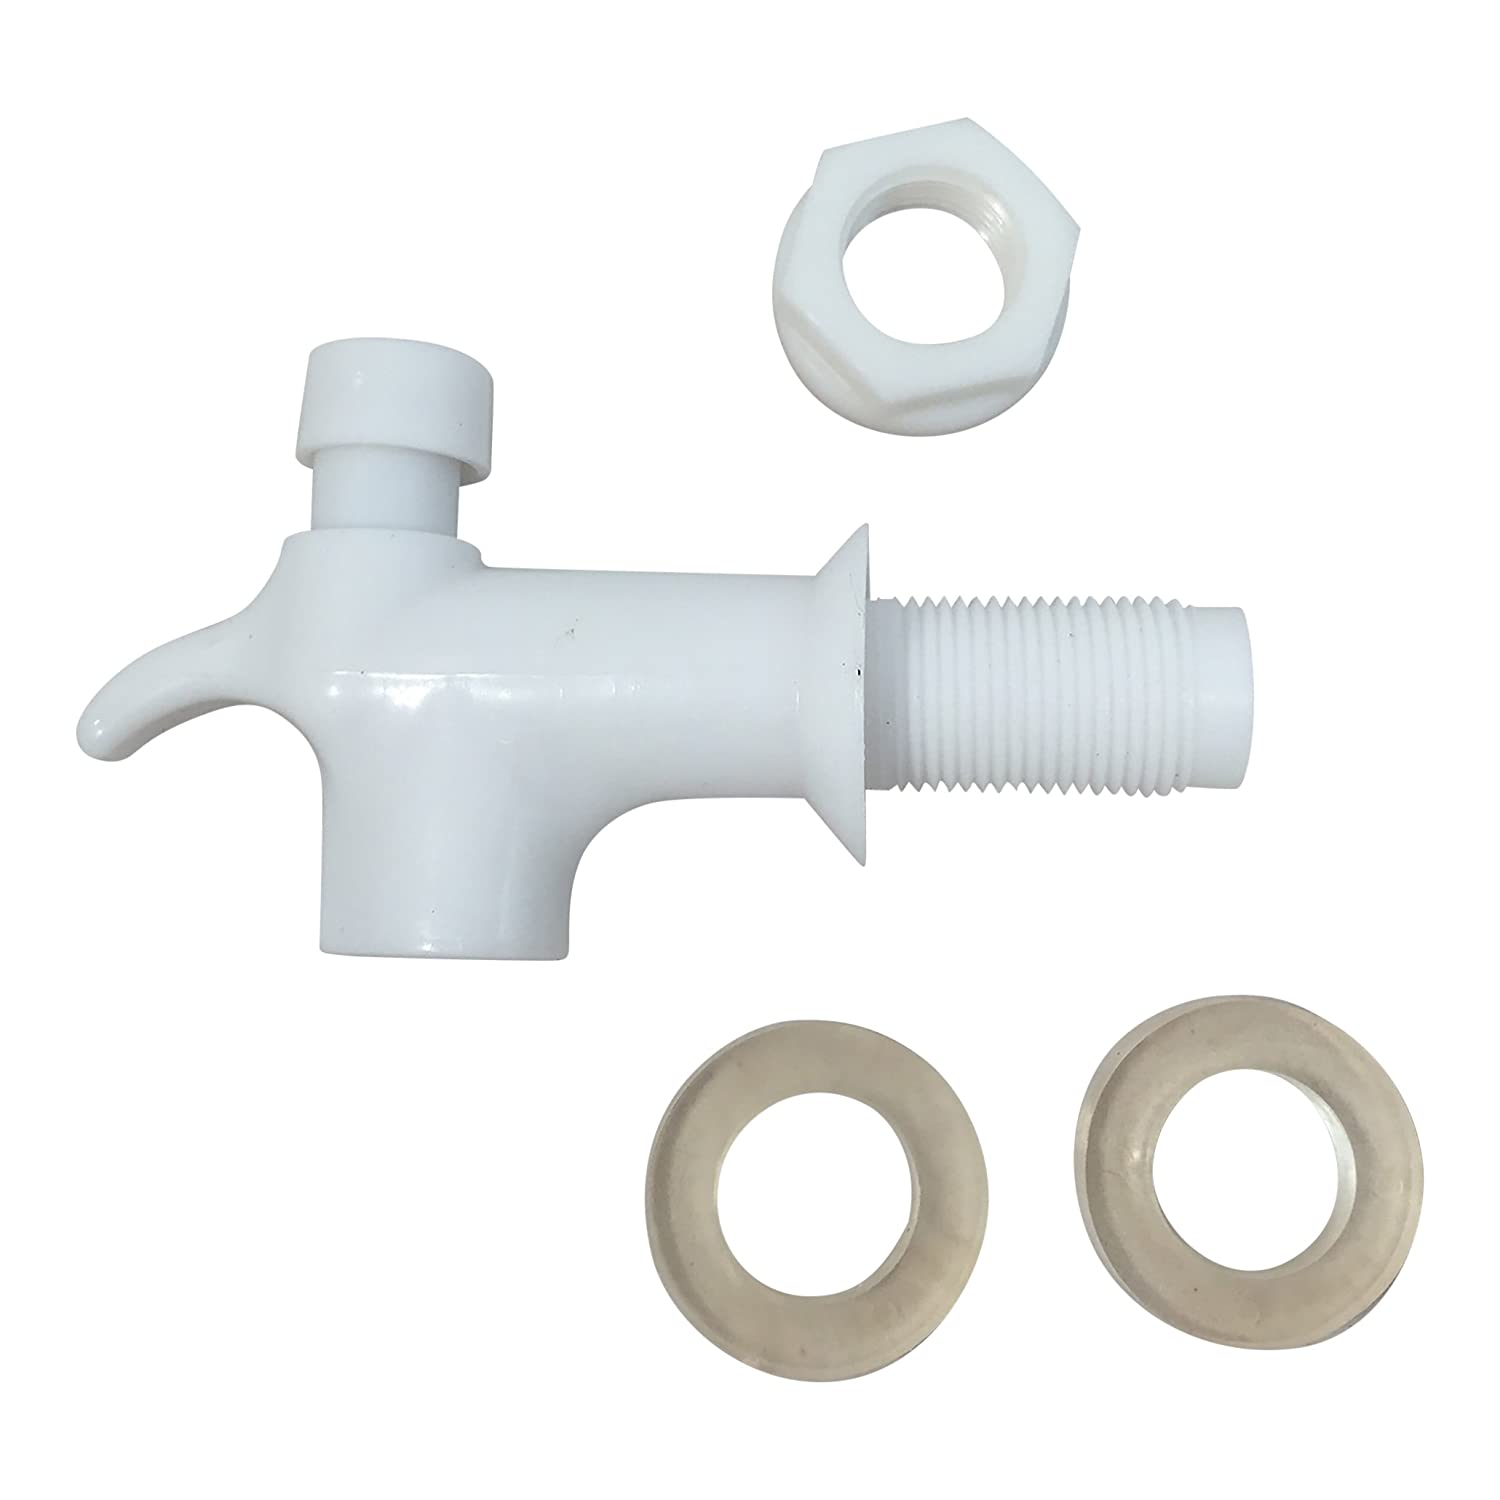 Amazon.com: MADOL Water Dispenser Replacement Faucet Push Button ...